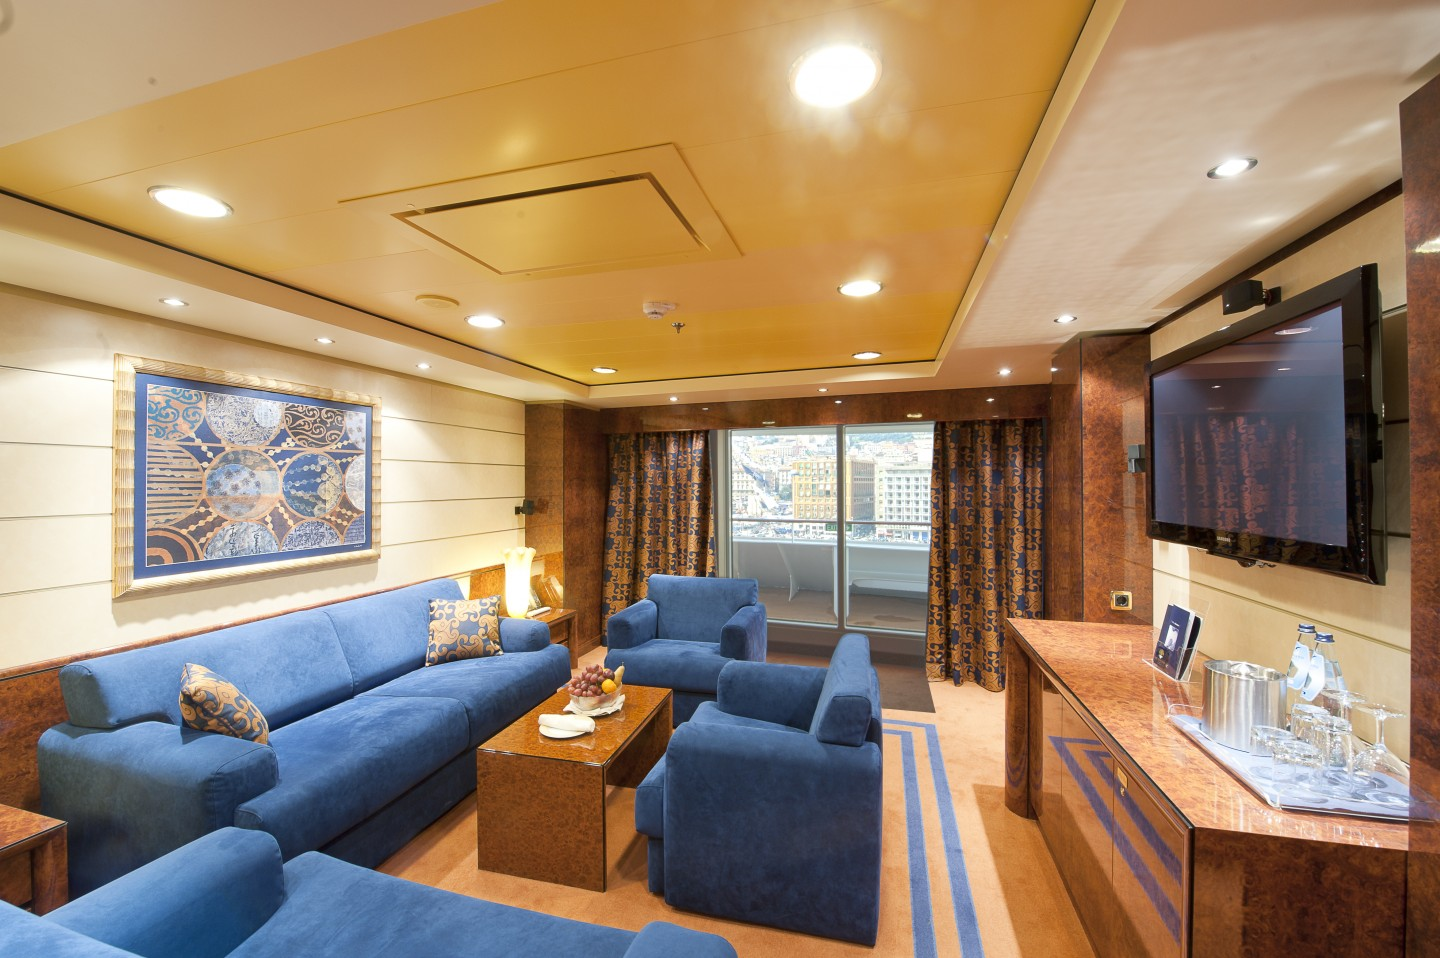 MSC Splendida Cabin Types - Greatdays Travel Group